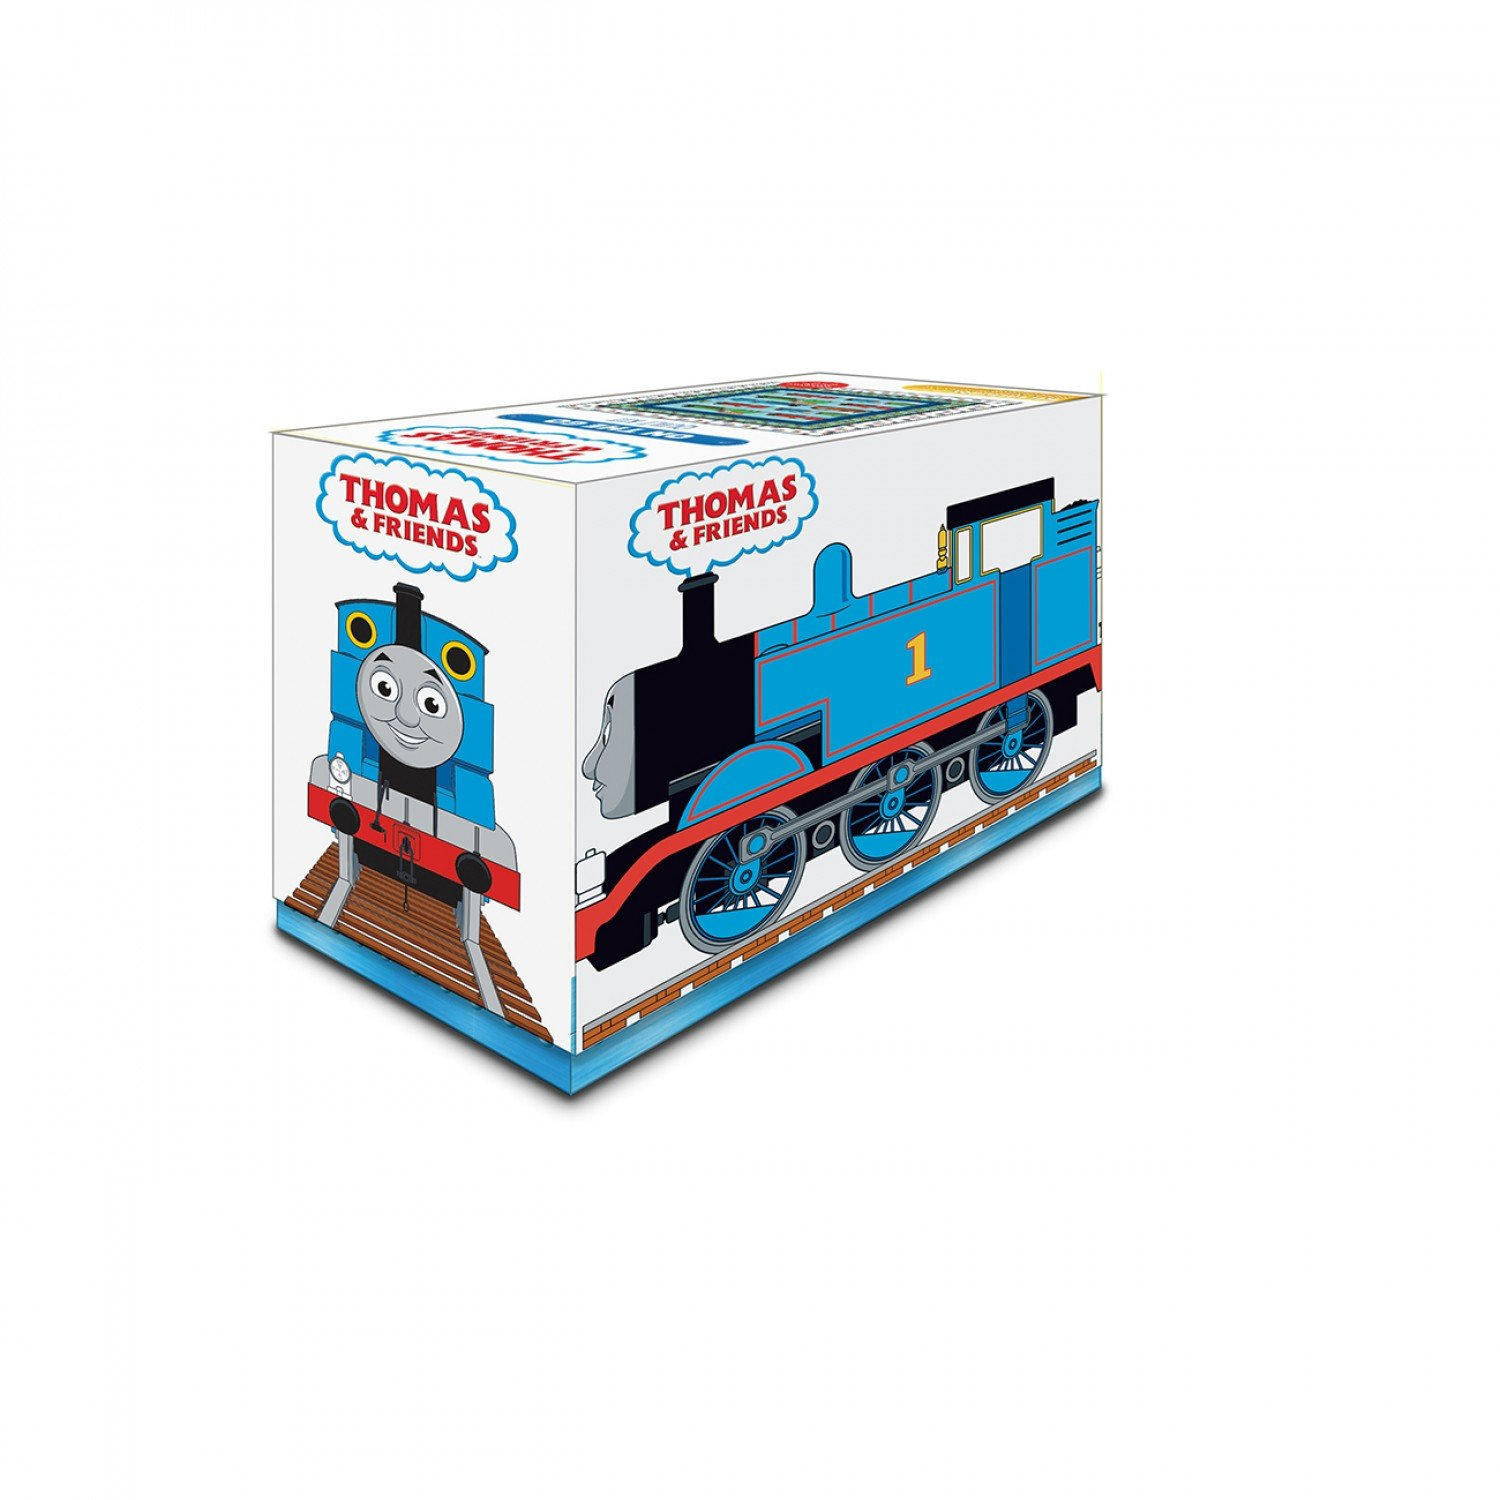 THOMAS & FRIENDS ON THE GO QUILT KIT 68 X 73